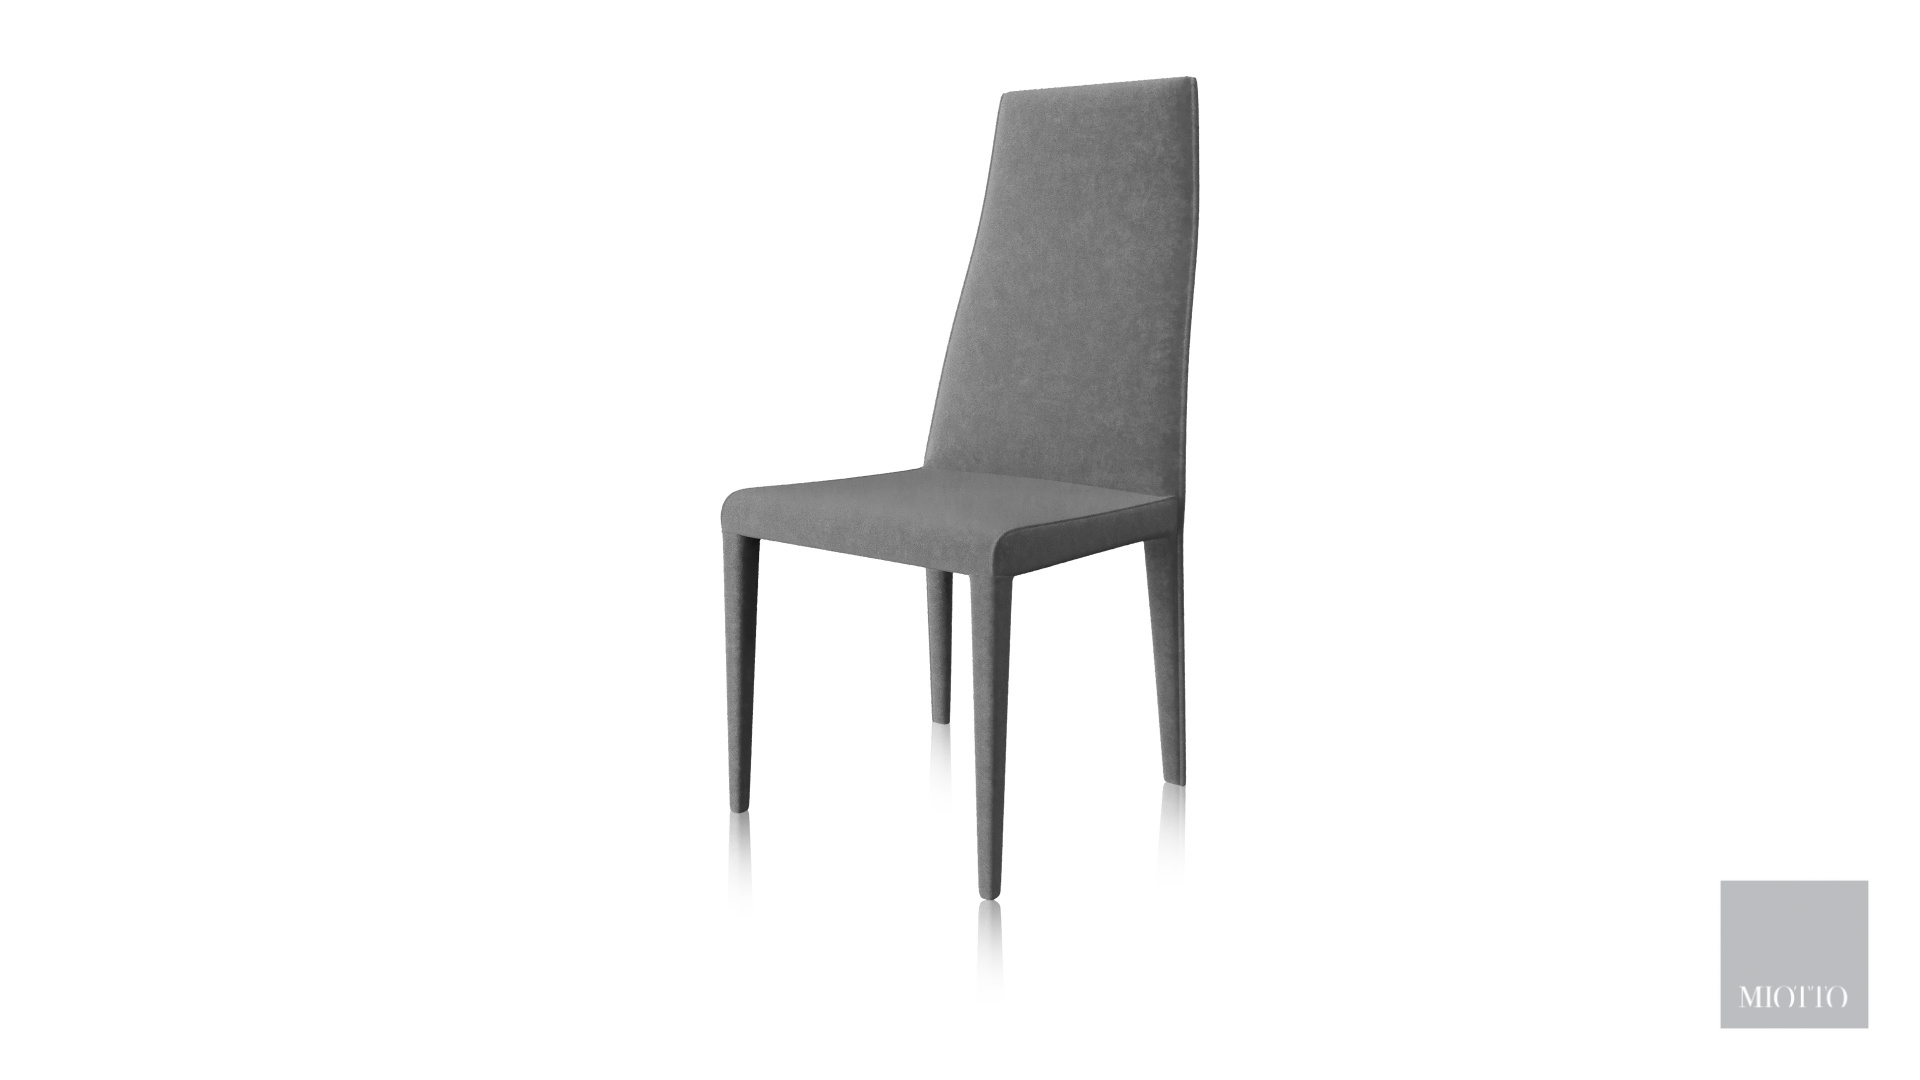 miotto_Rigano dining chair grey miotto furniture